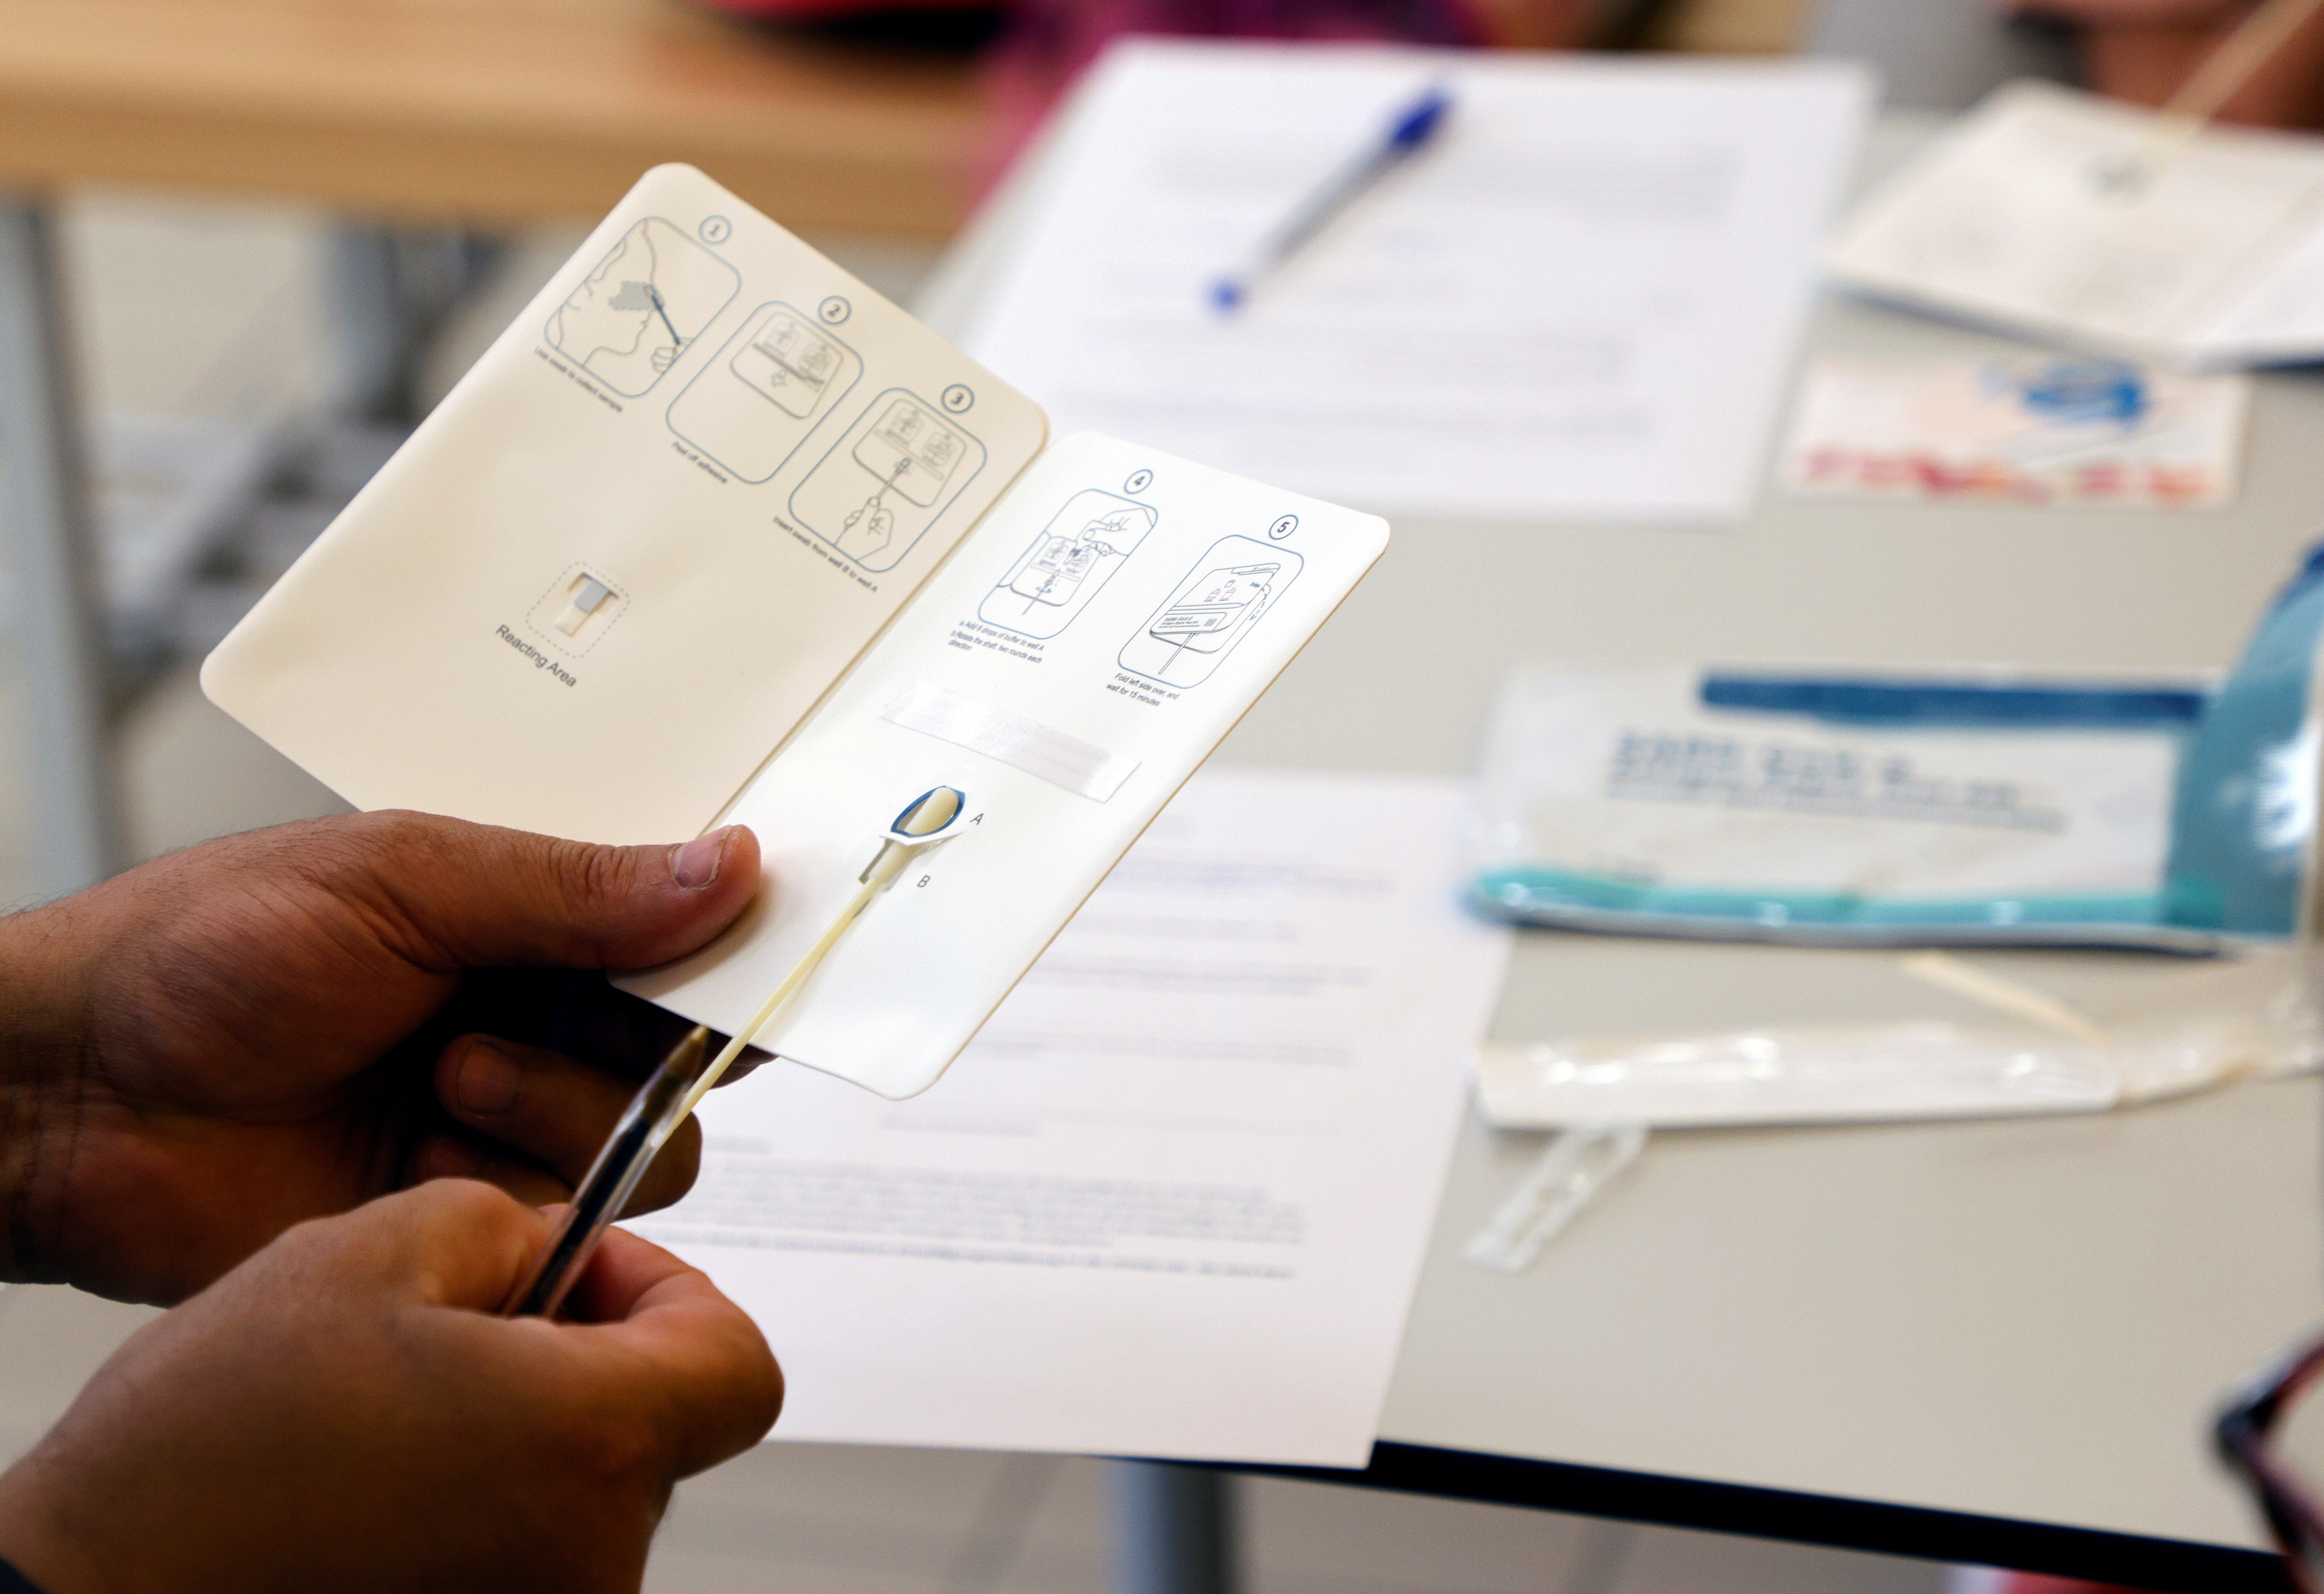 A person holds a coronavirus (COVID-19) rapid antigen test in a primary school, as Austrian schools open for pupils after summer holidays, in Vienna, Austria, September 6, 2021. REUTERS/Leonhard Foeger - RC28KP91JPFJ